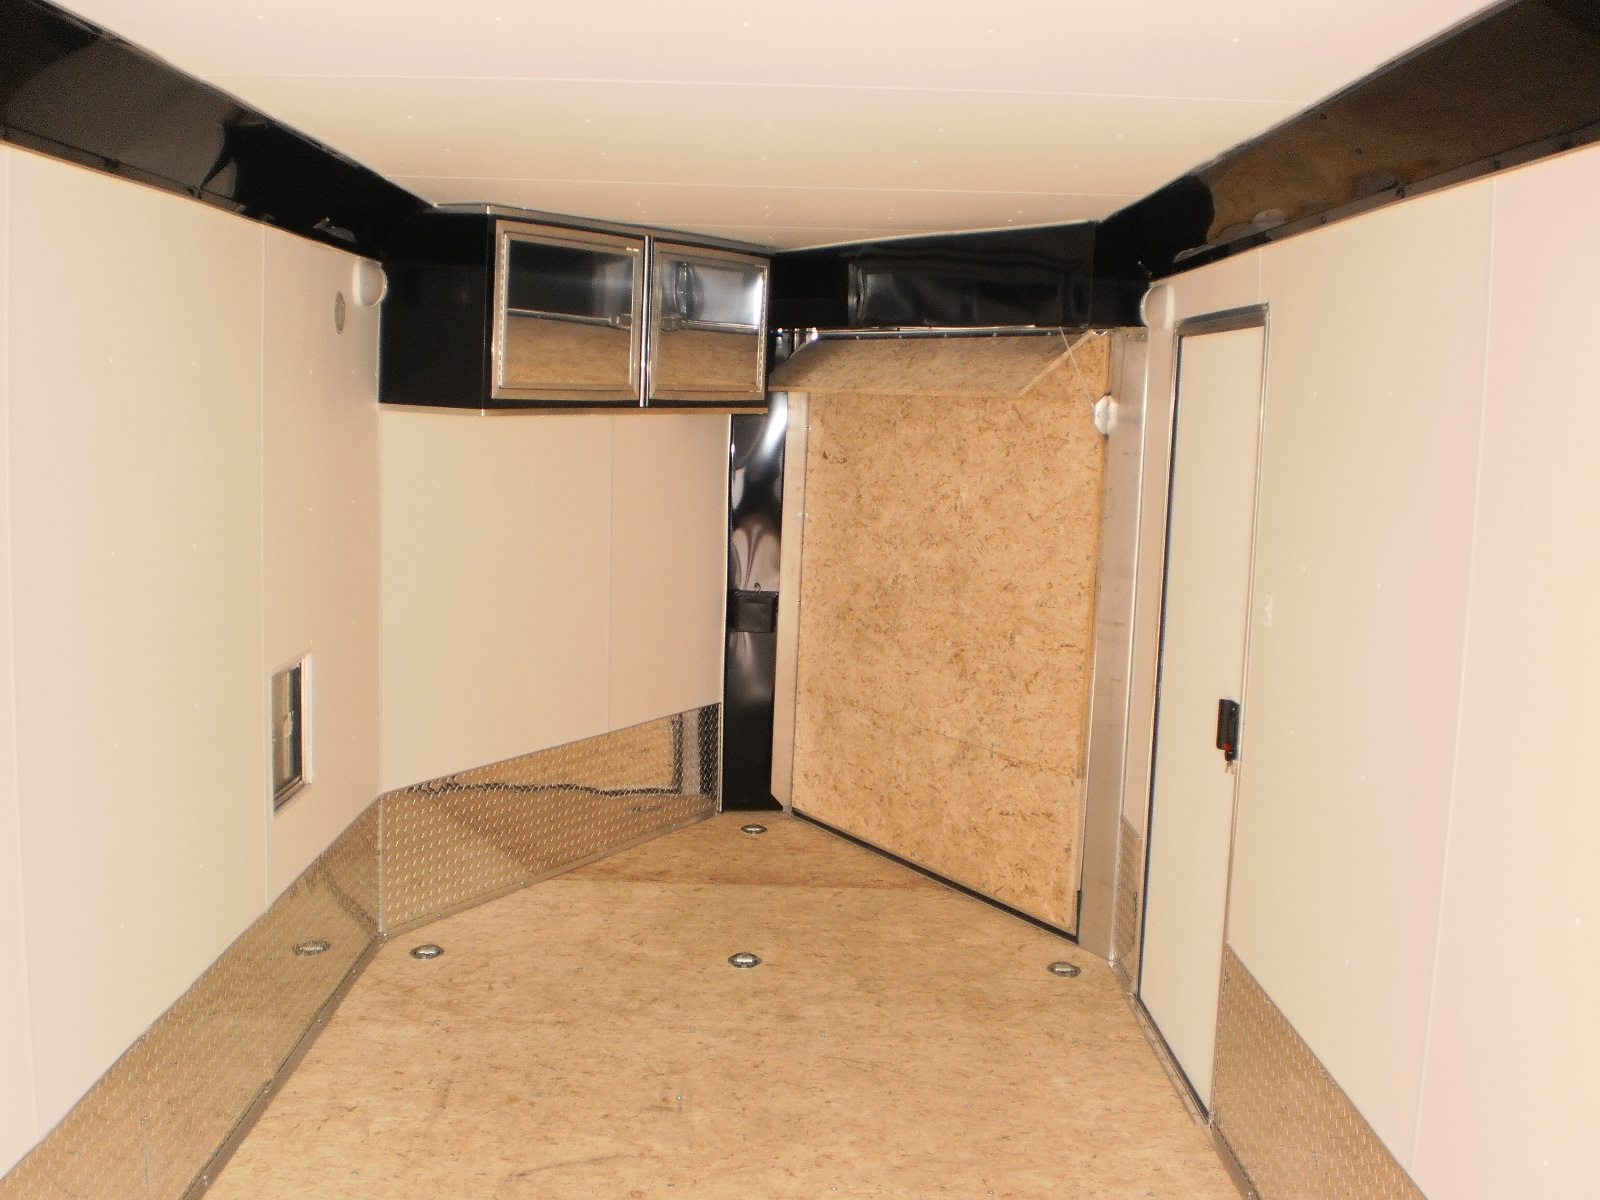 Flooring Walls And Ceiling R And P Carriages Cargo